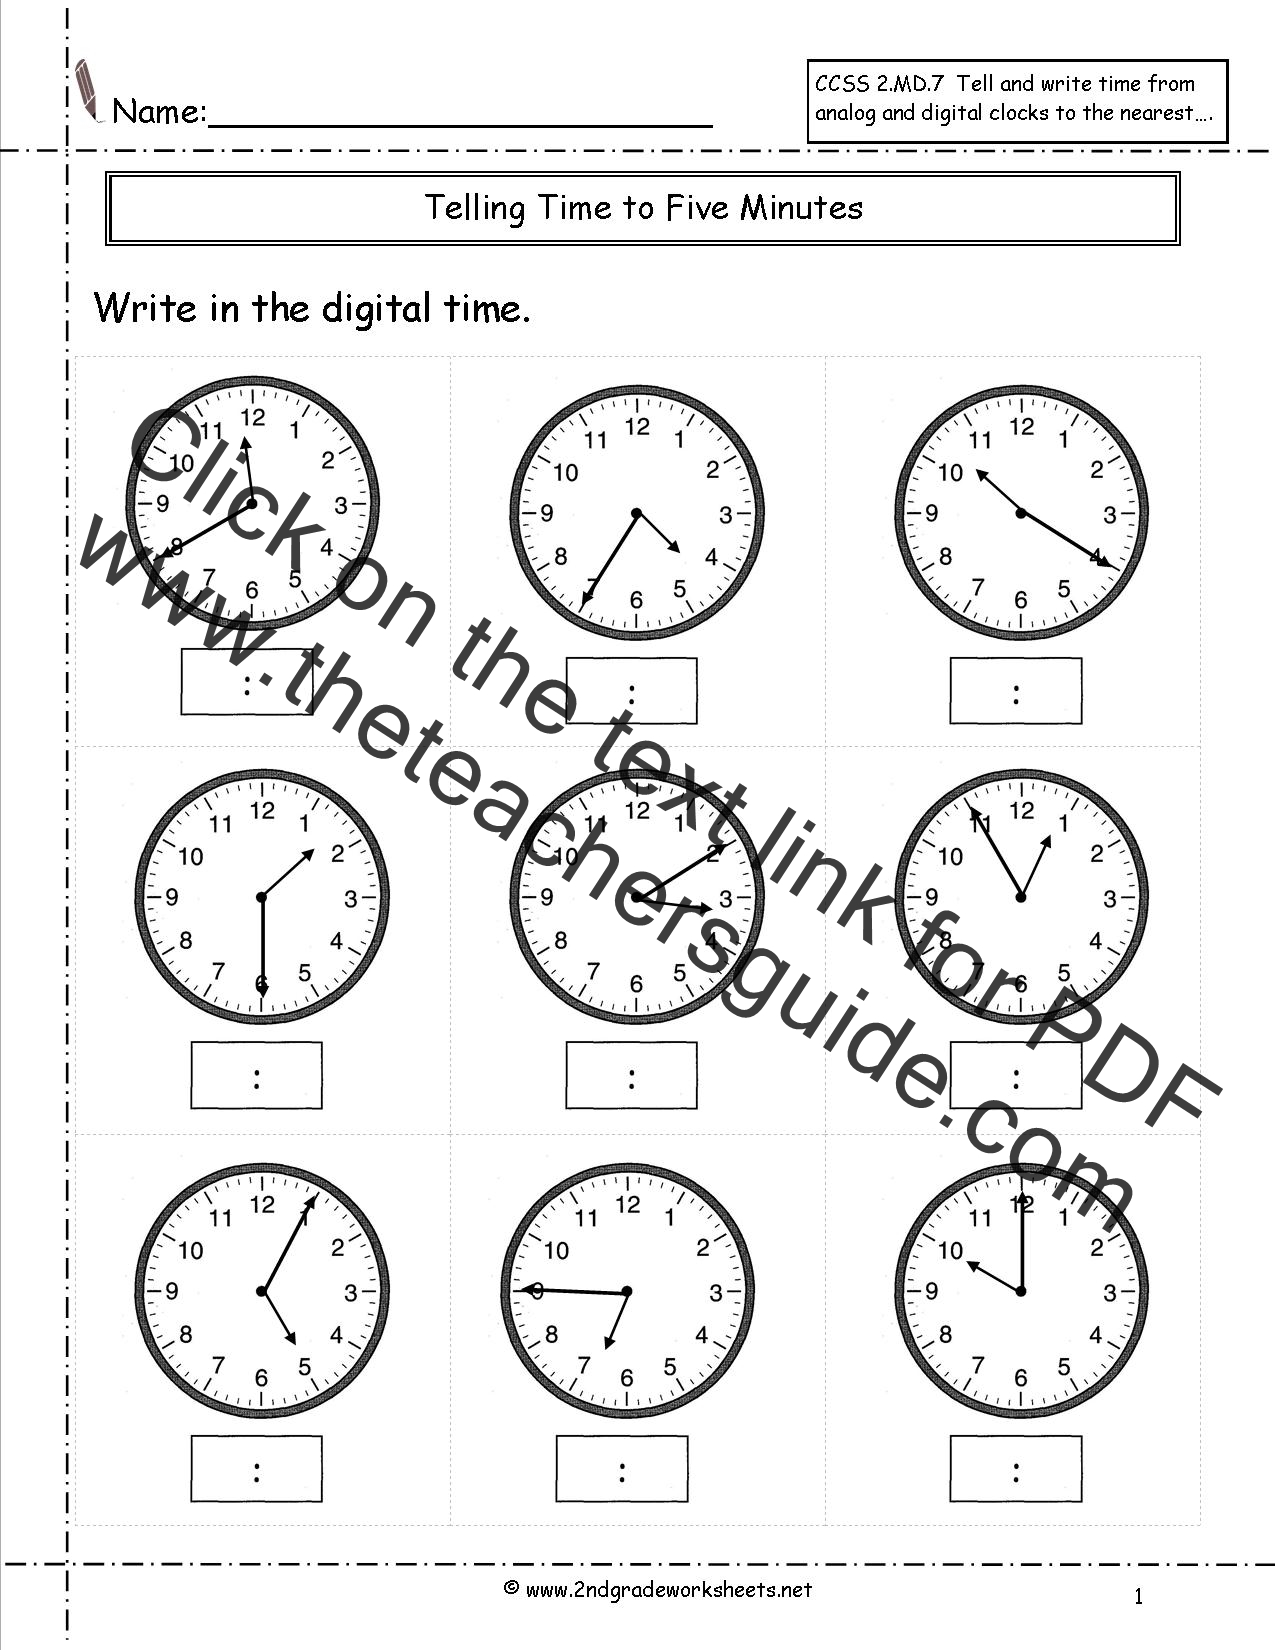 Worksheets Clock Worksheets Grade 2 telling and writing time worksheets to nearest five minutes worksheet